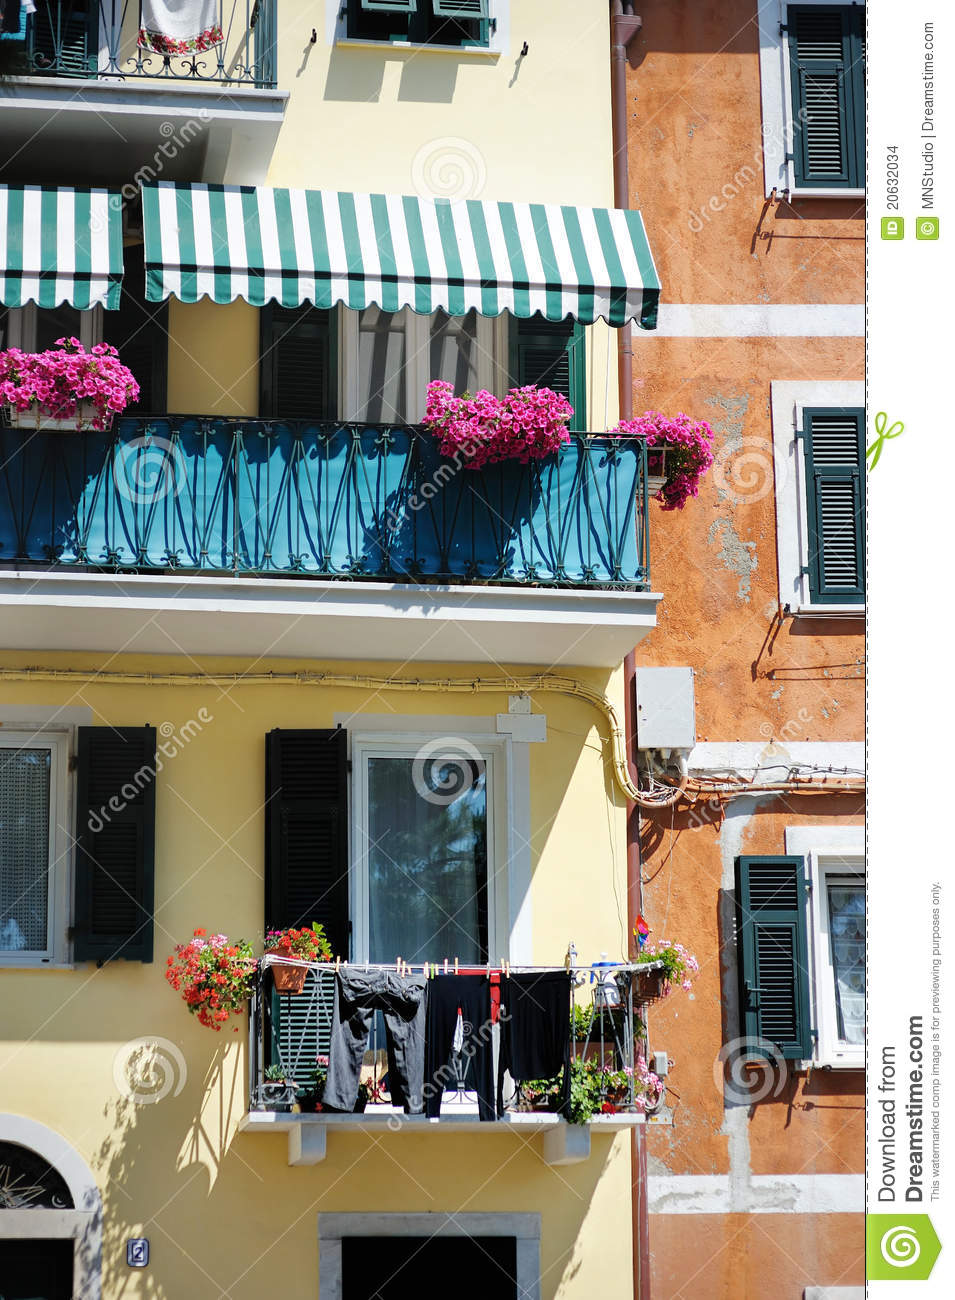 A colorful balcony in italy stock images image 20632034 for Balcony in italian